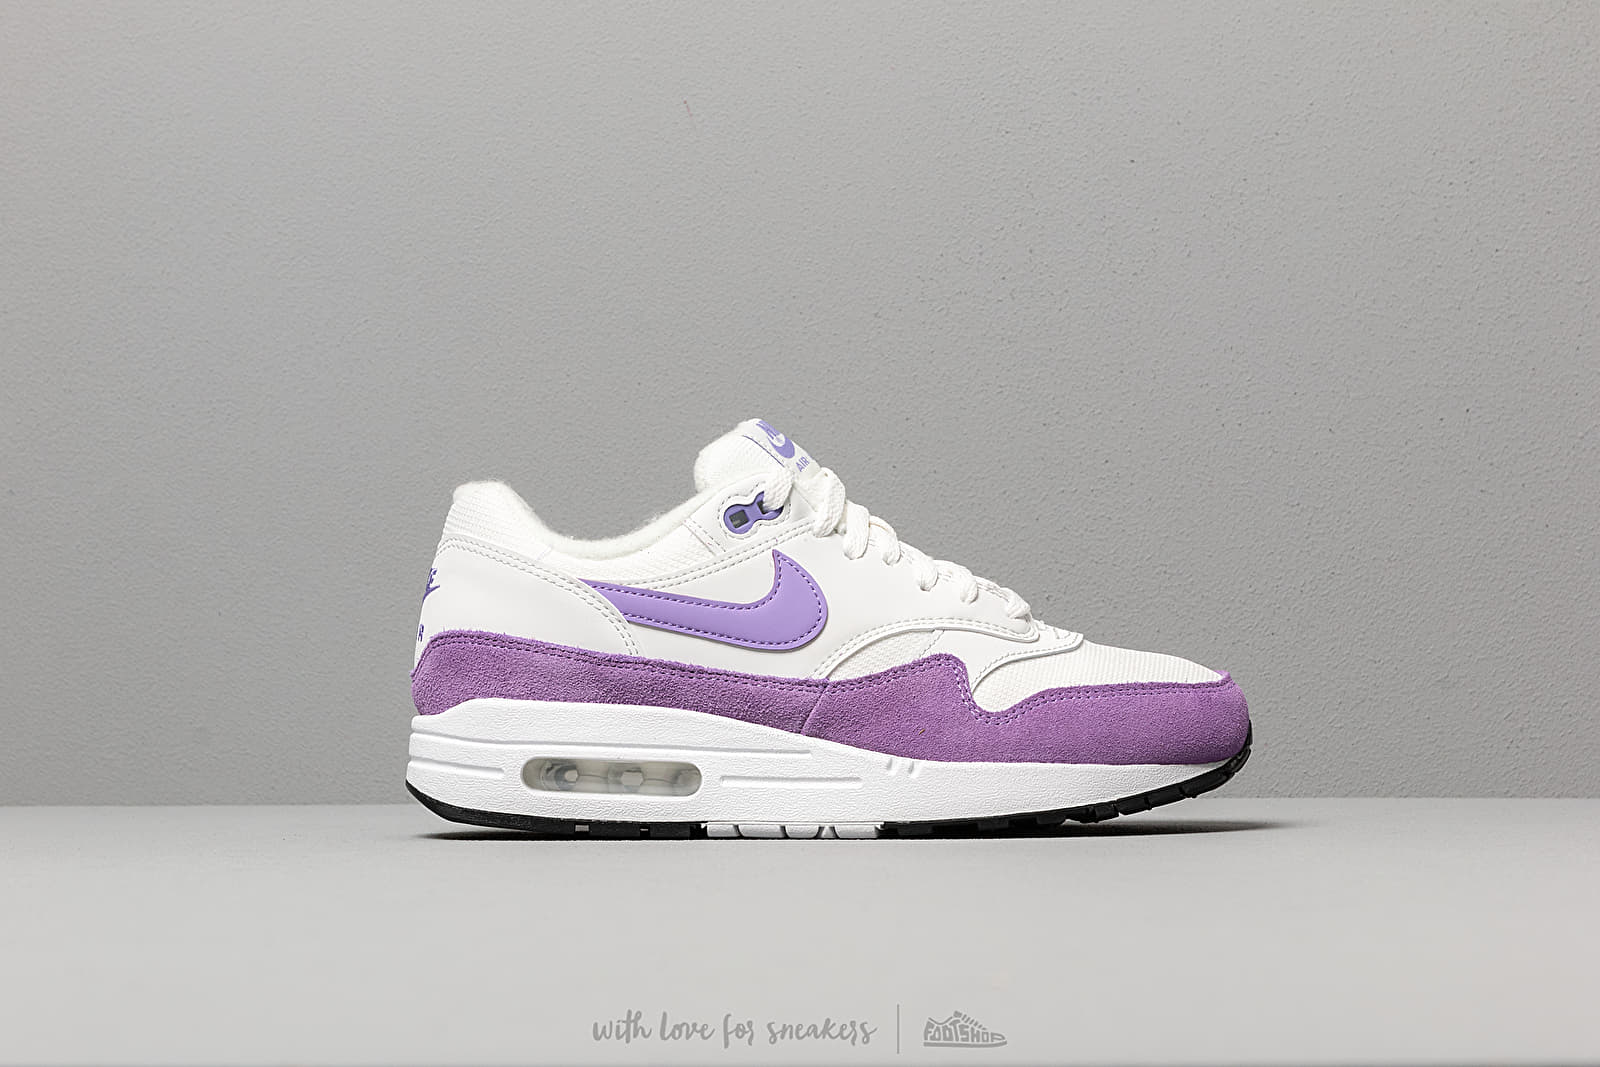 Max Wmns 1 Air BlackFootshop Nike Violet Atomic White Summit DYEIWH9e2